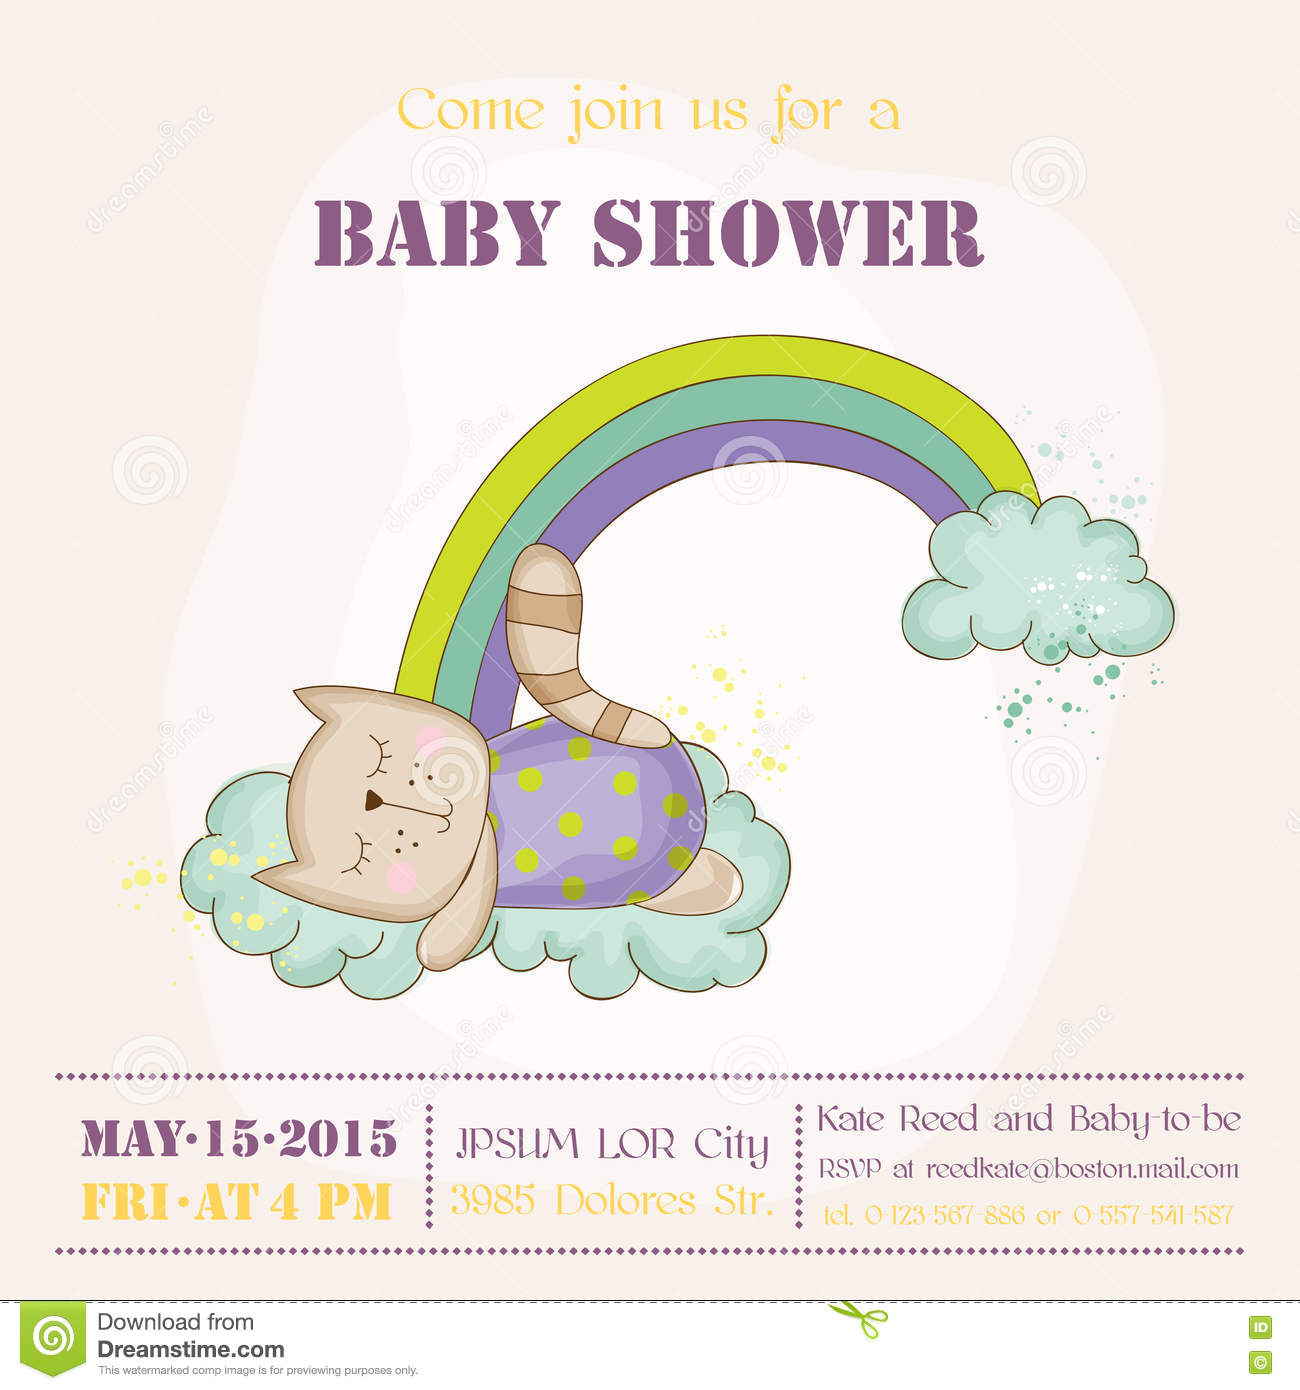 Baby Cat Sleeping on a Rainbow - Baby Shower or Arrival Card